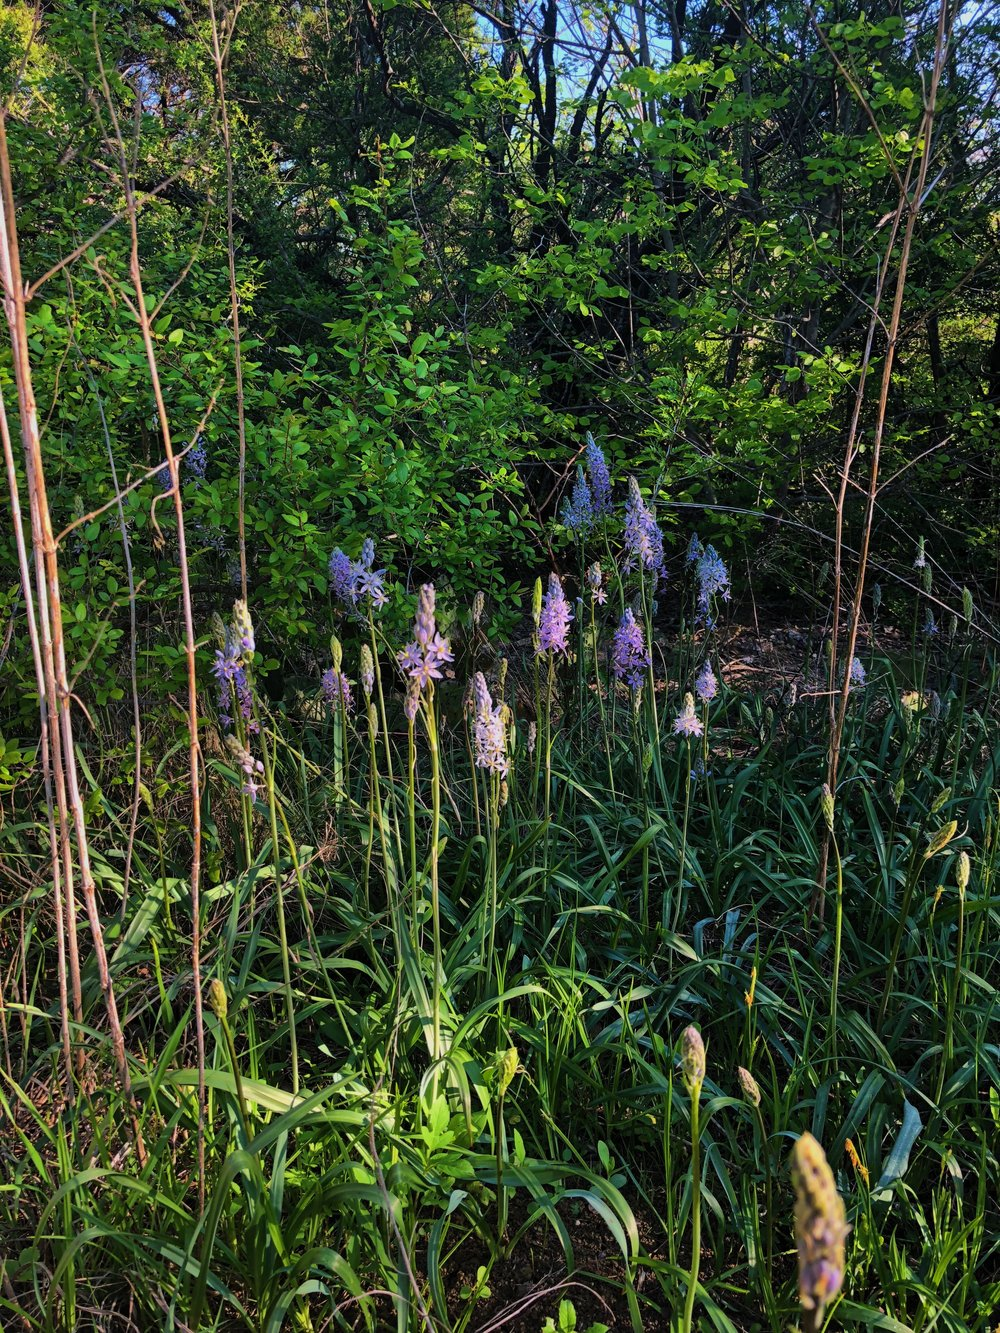 Camassia scilloides, Wild hyacinth